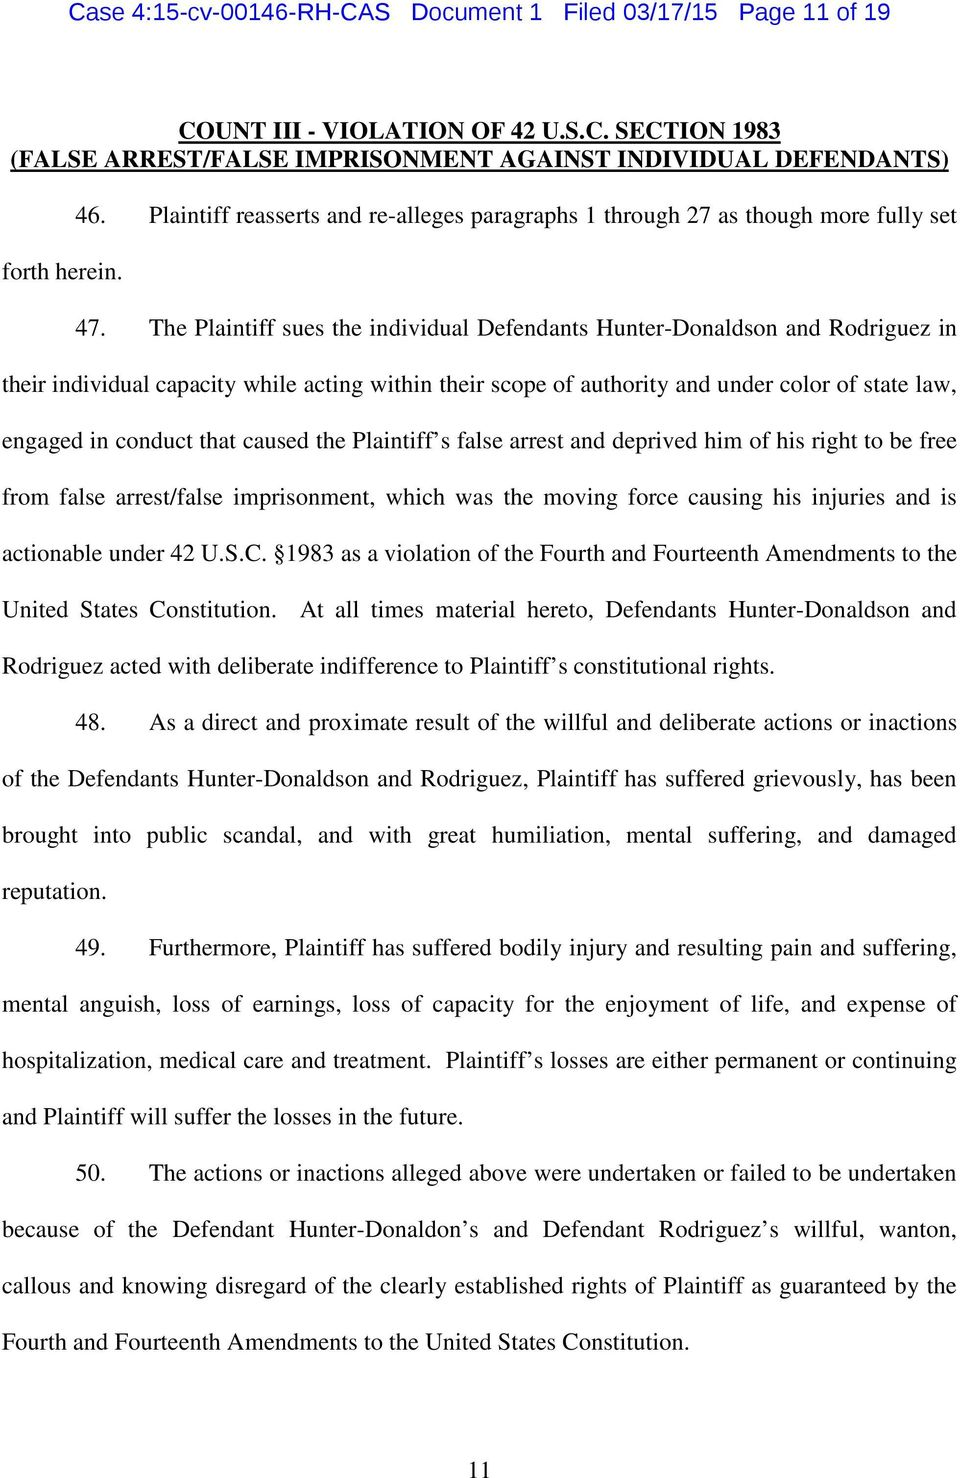 The Plaintiff sues the individual Defendants Hunter-Donaldson and Rodriguez in their individual capacity while acting within their scope of authority and under color of state law, engaged in conduct